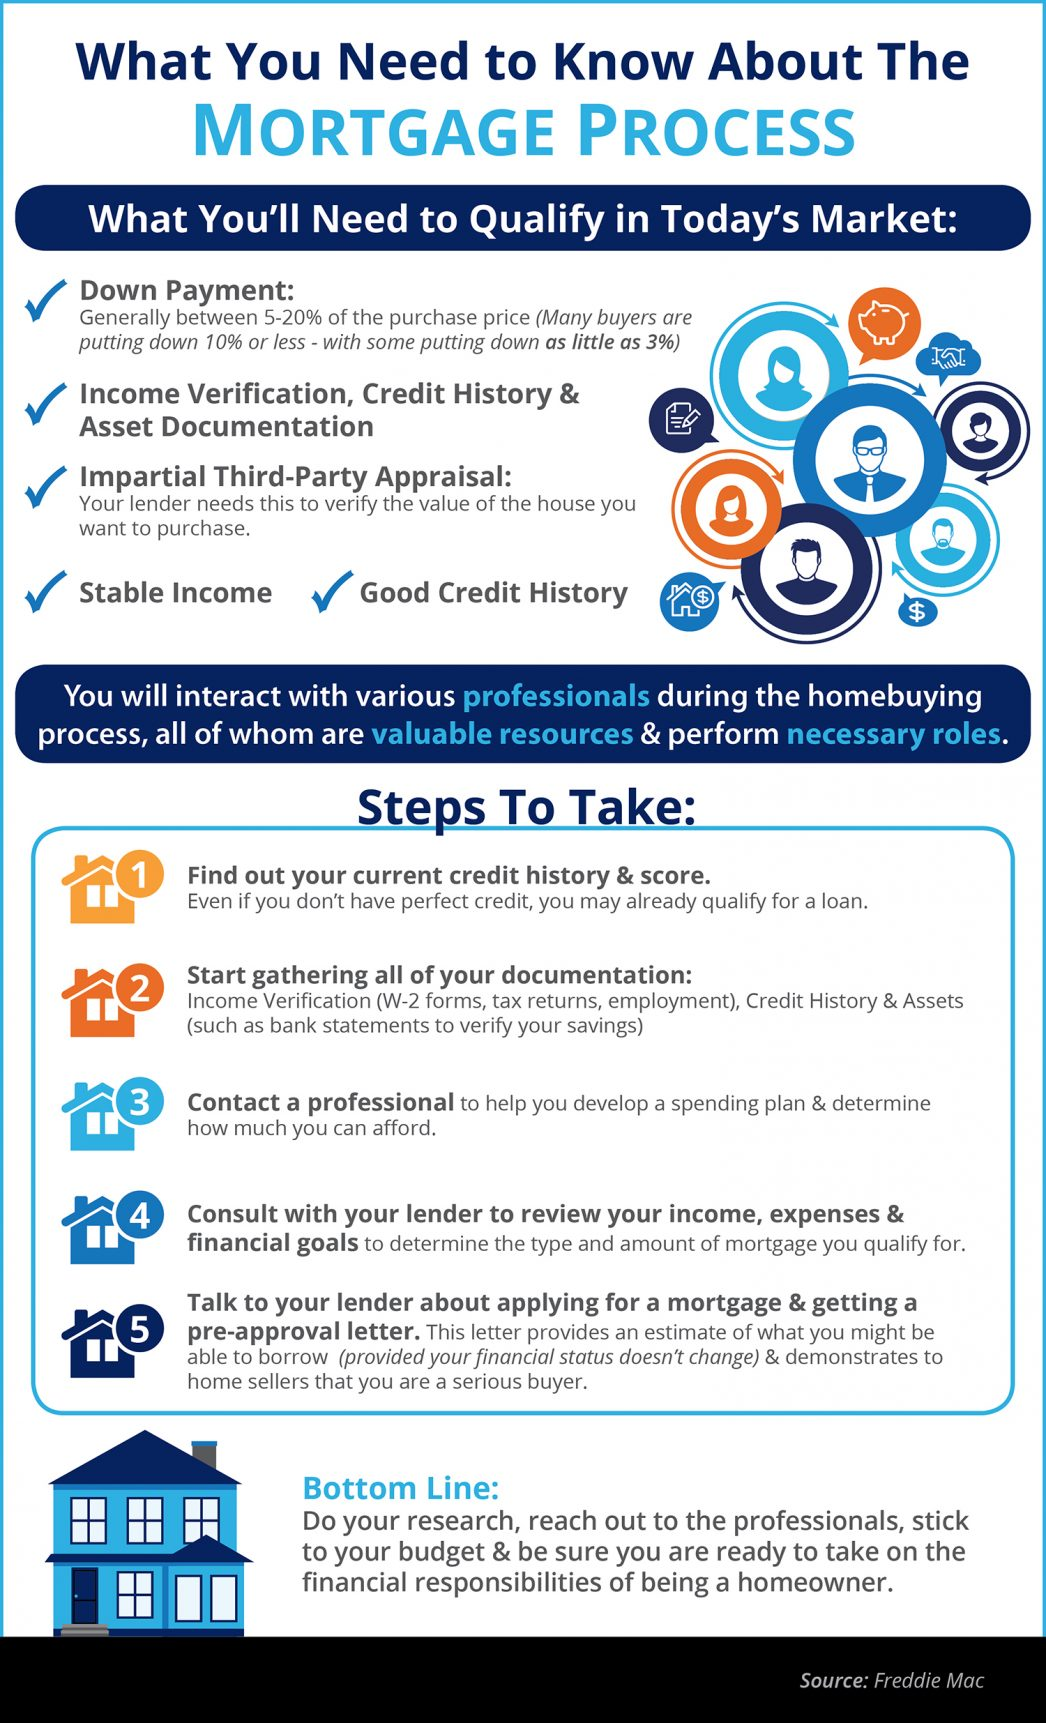 mortgage-process-stm-1046x1723-1